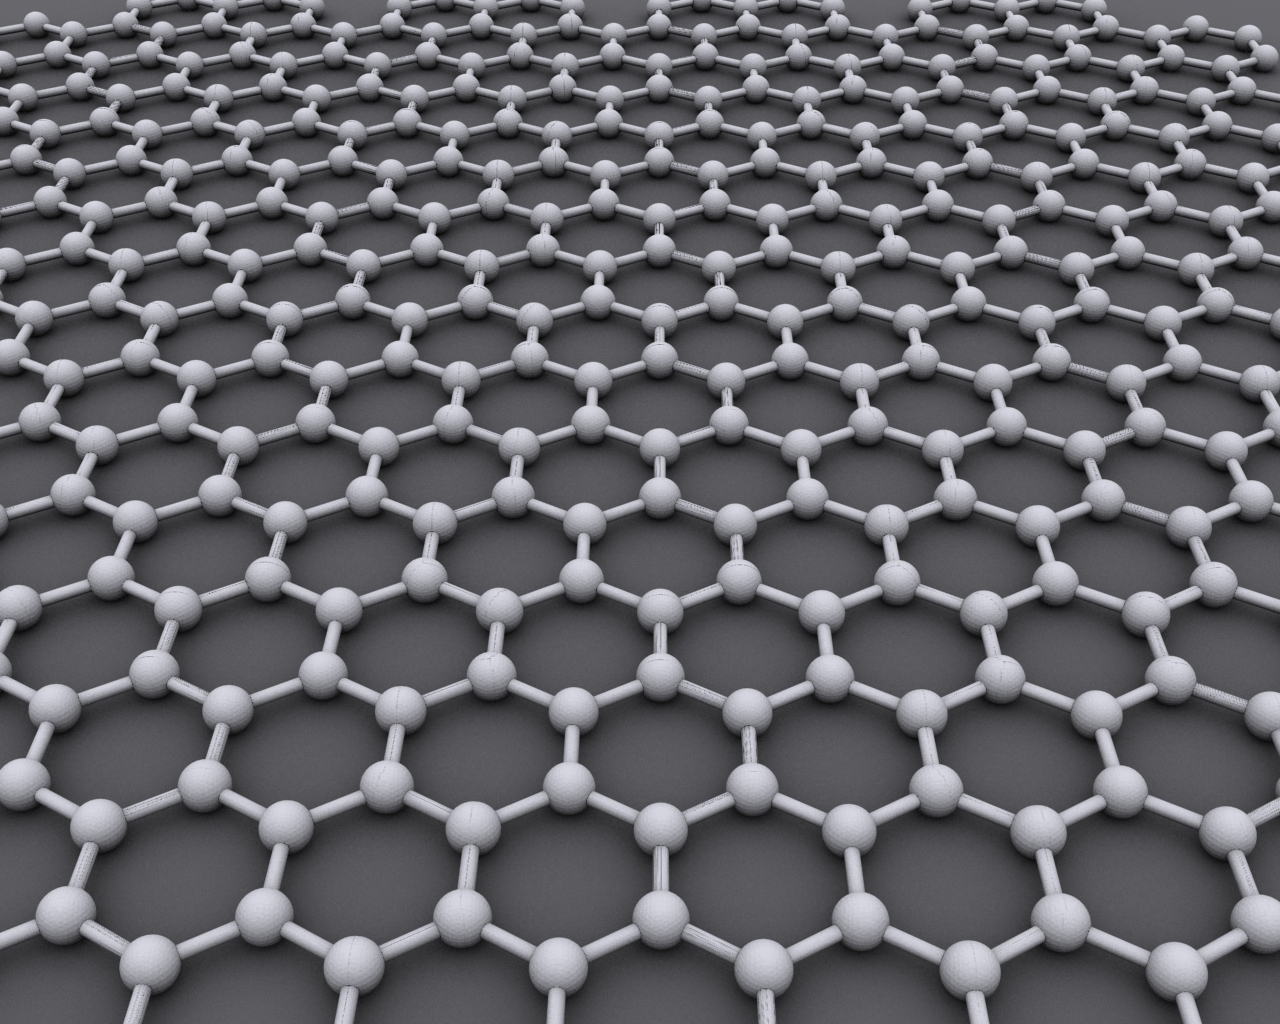 """Graphene, by <a href=""""https://commons.wikimedia.org/wiki/Category:Graphene#/media/File:Graphen.jpg""""target=""""_blank""""AlexanderAlUS/Wikimedia Commons/<a href=""""http://creativecommons.org/licenses/by-sa""""target=""""_blank""""/3.0/CC BY-SA 3.0"""